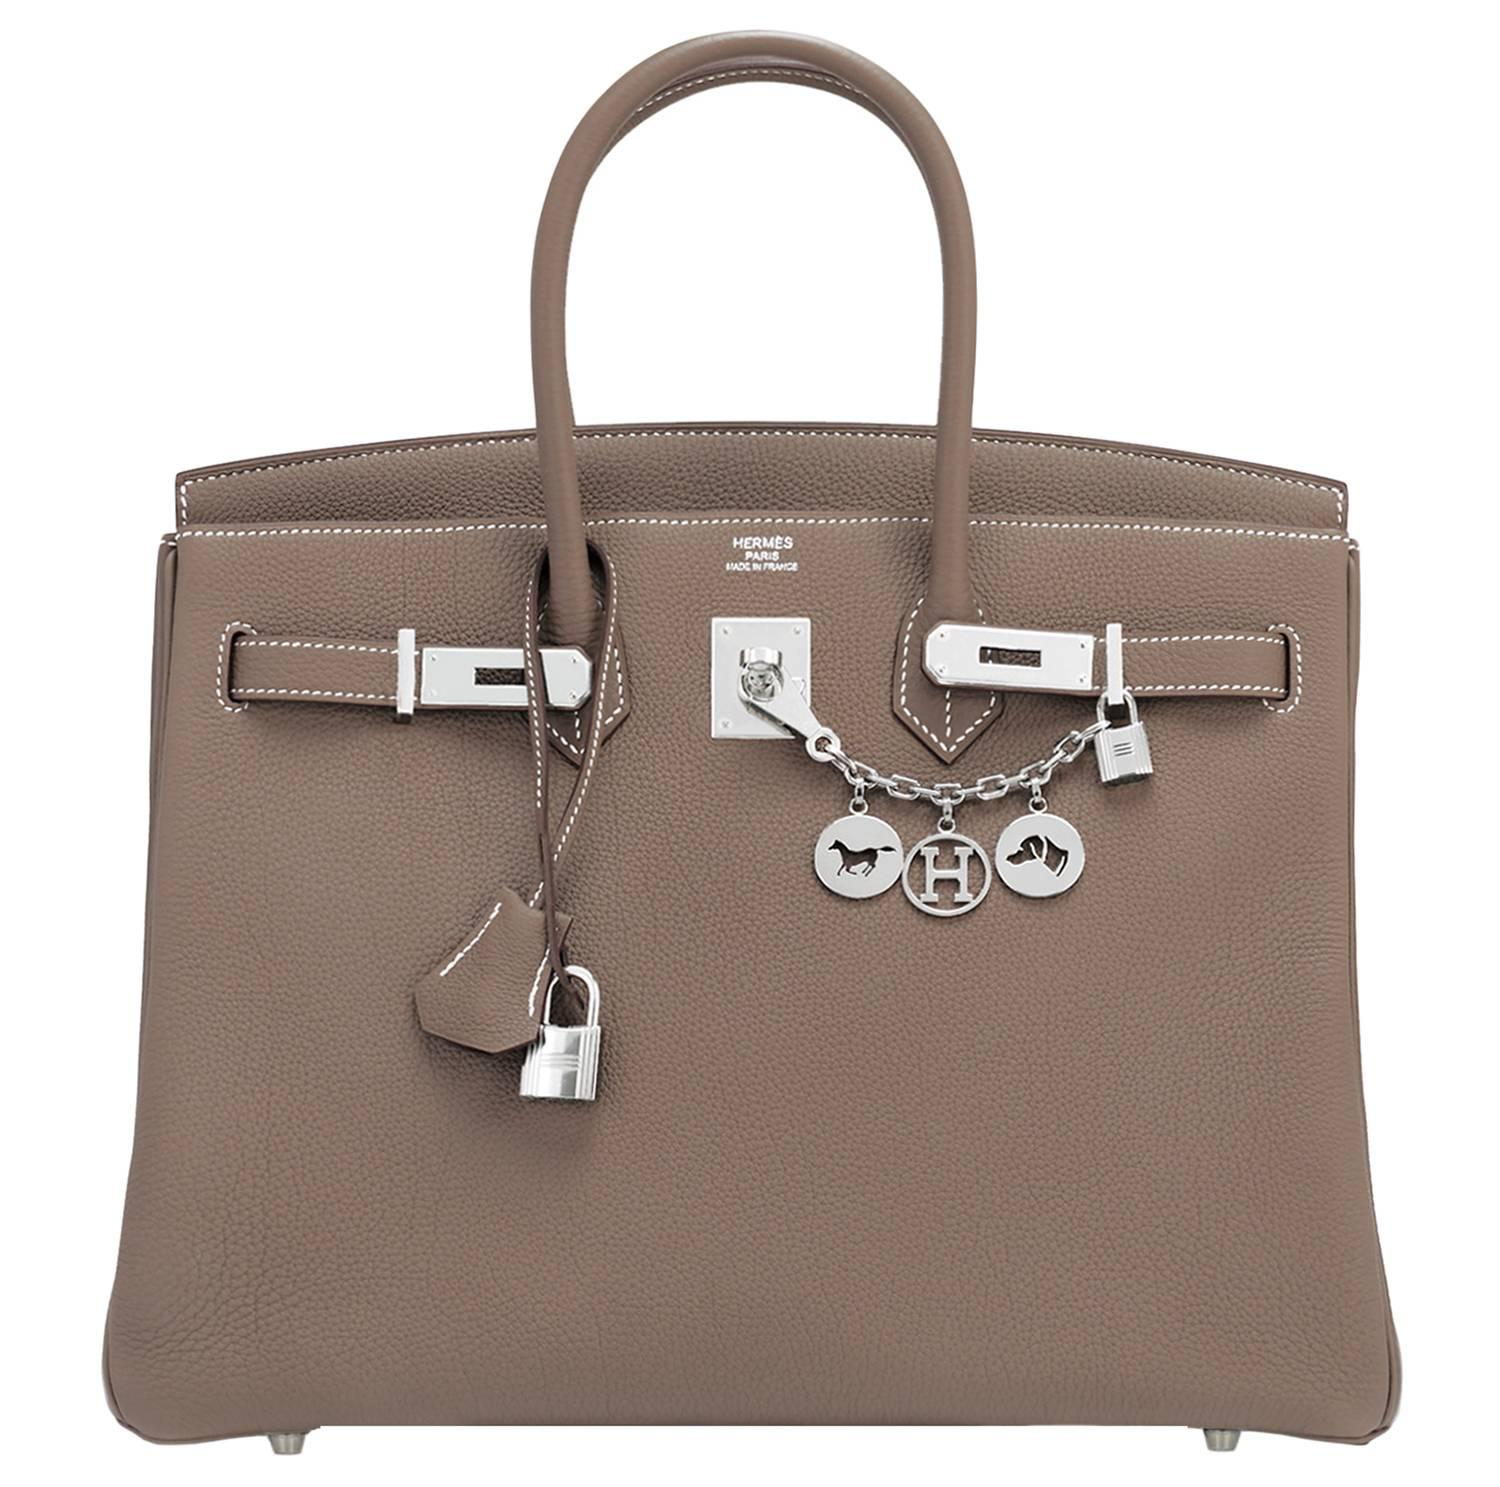 2a6983c74b Hermes Birkin 35Cm Handbags - 273 For Sale on 1stdibs